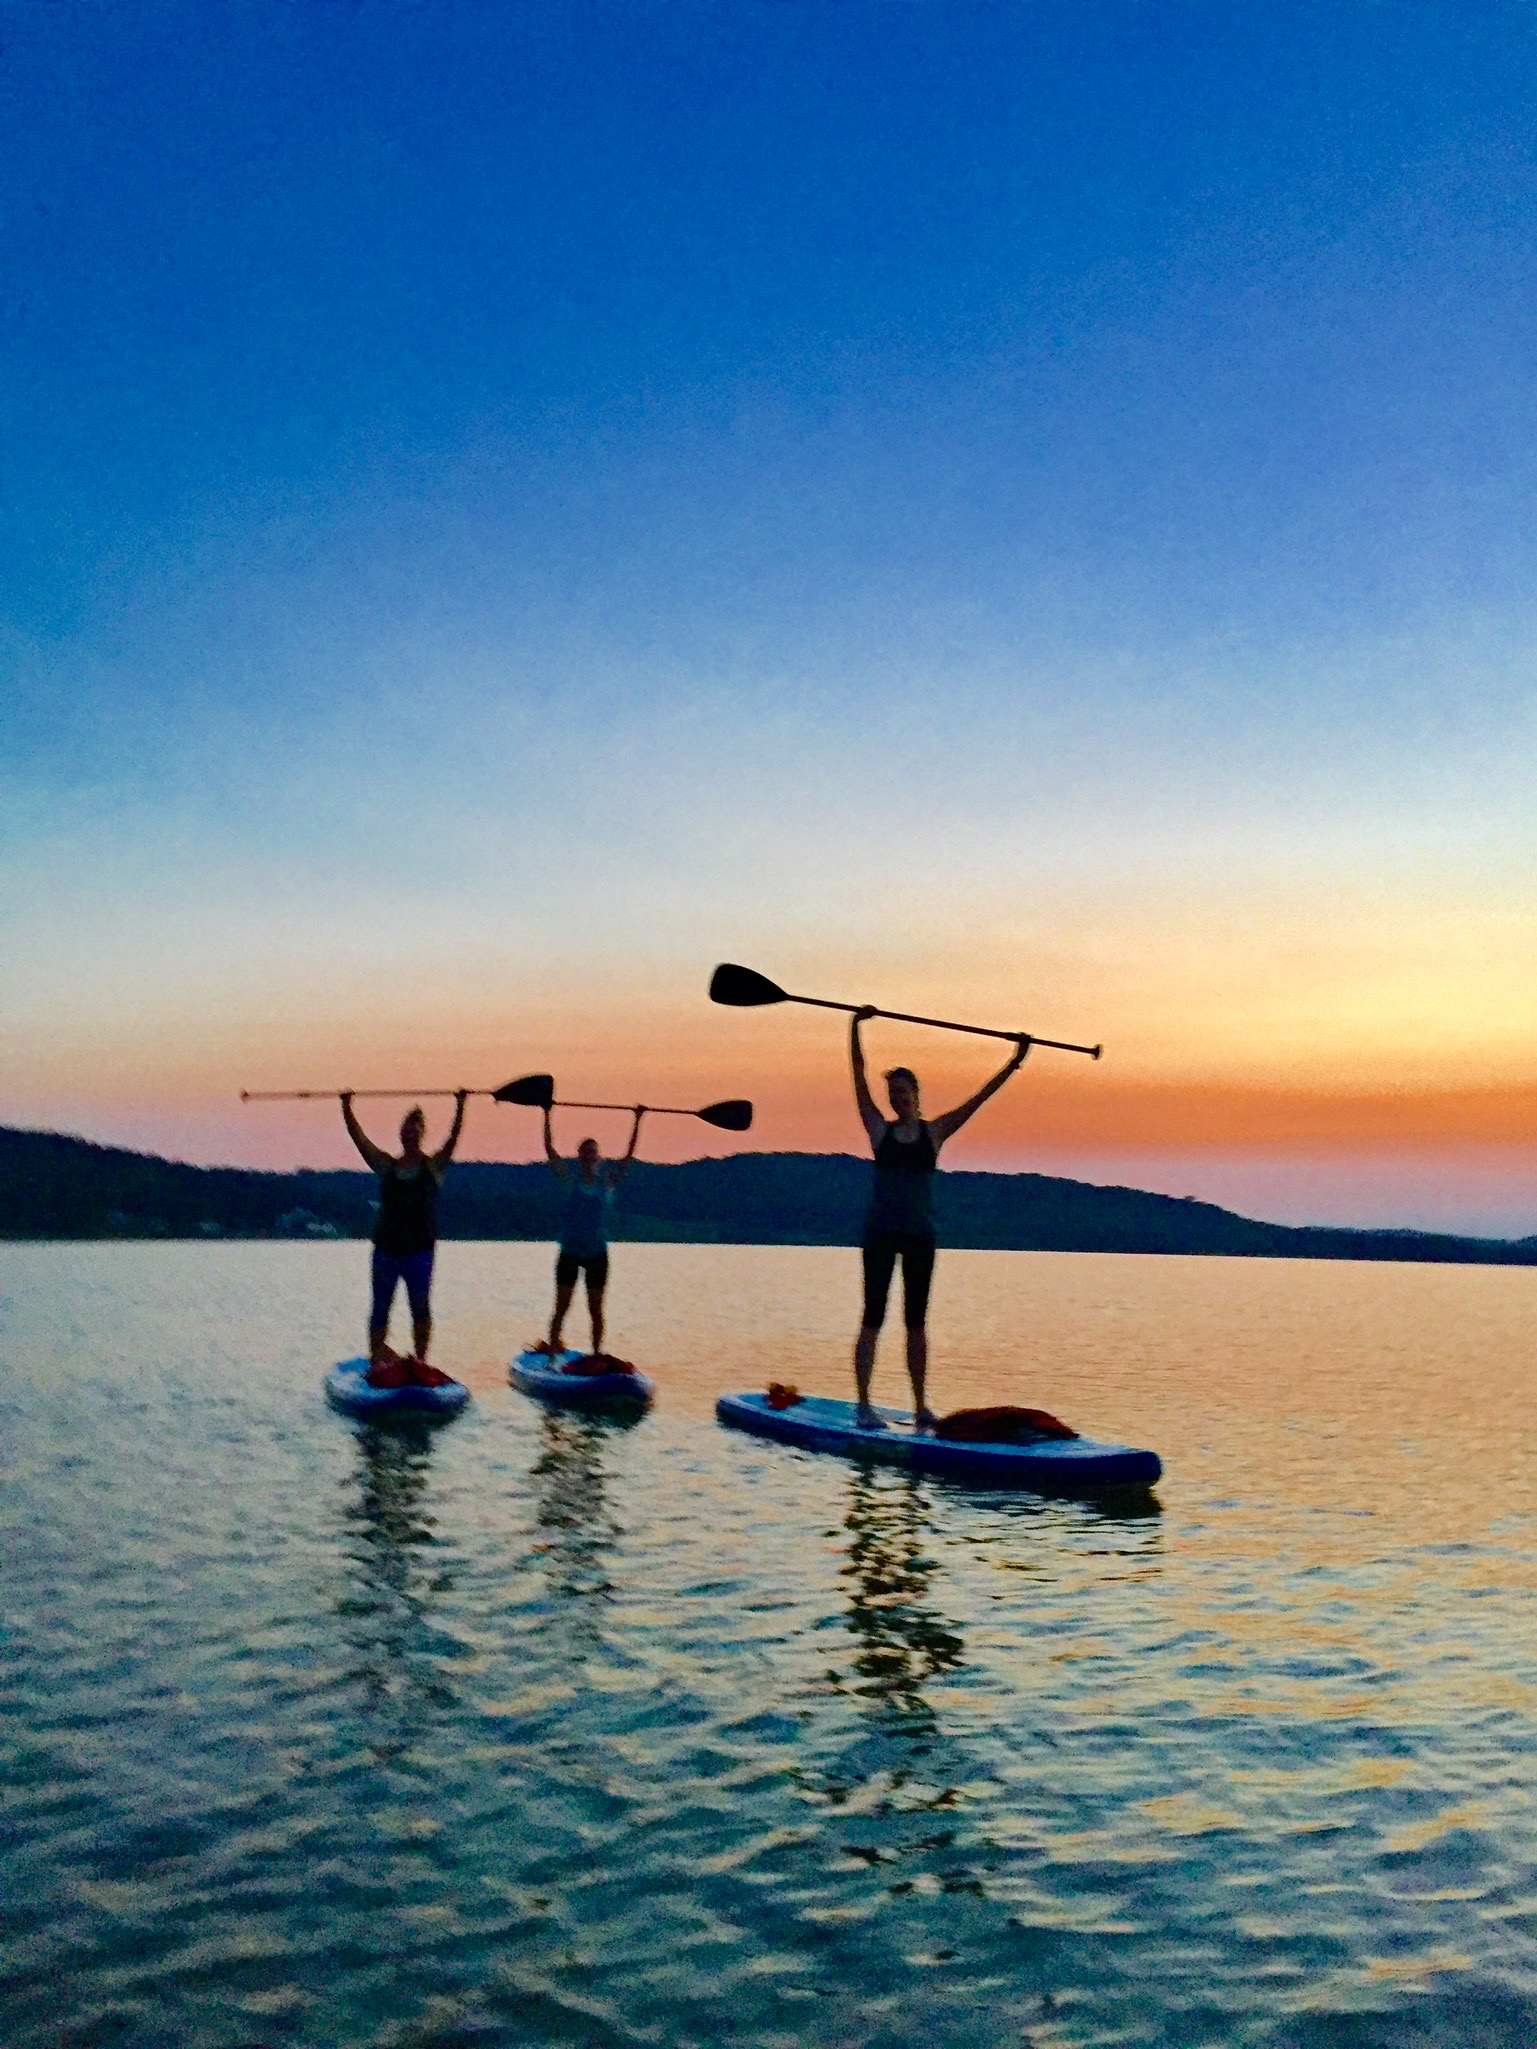 Three people standing on paddleboards, silhouetted by the sunset. They're holding their paddles over their heads.